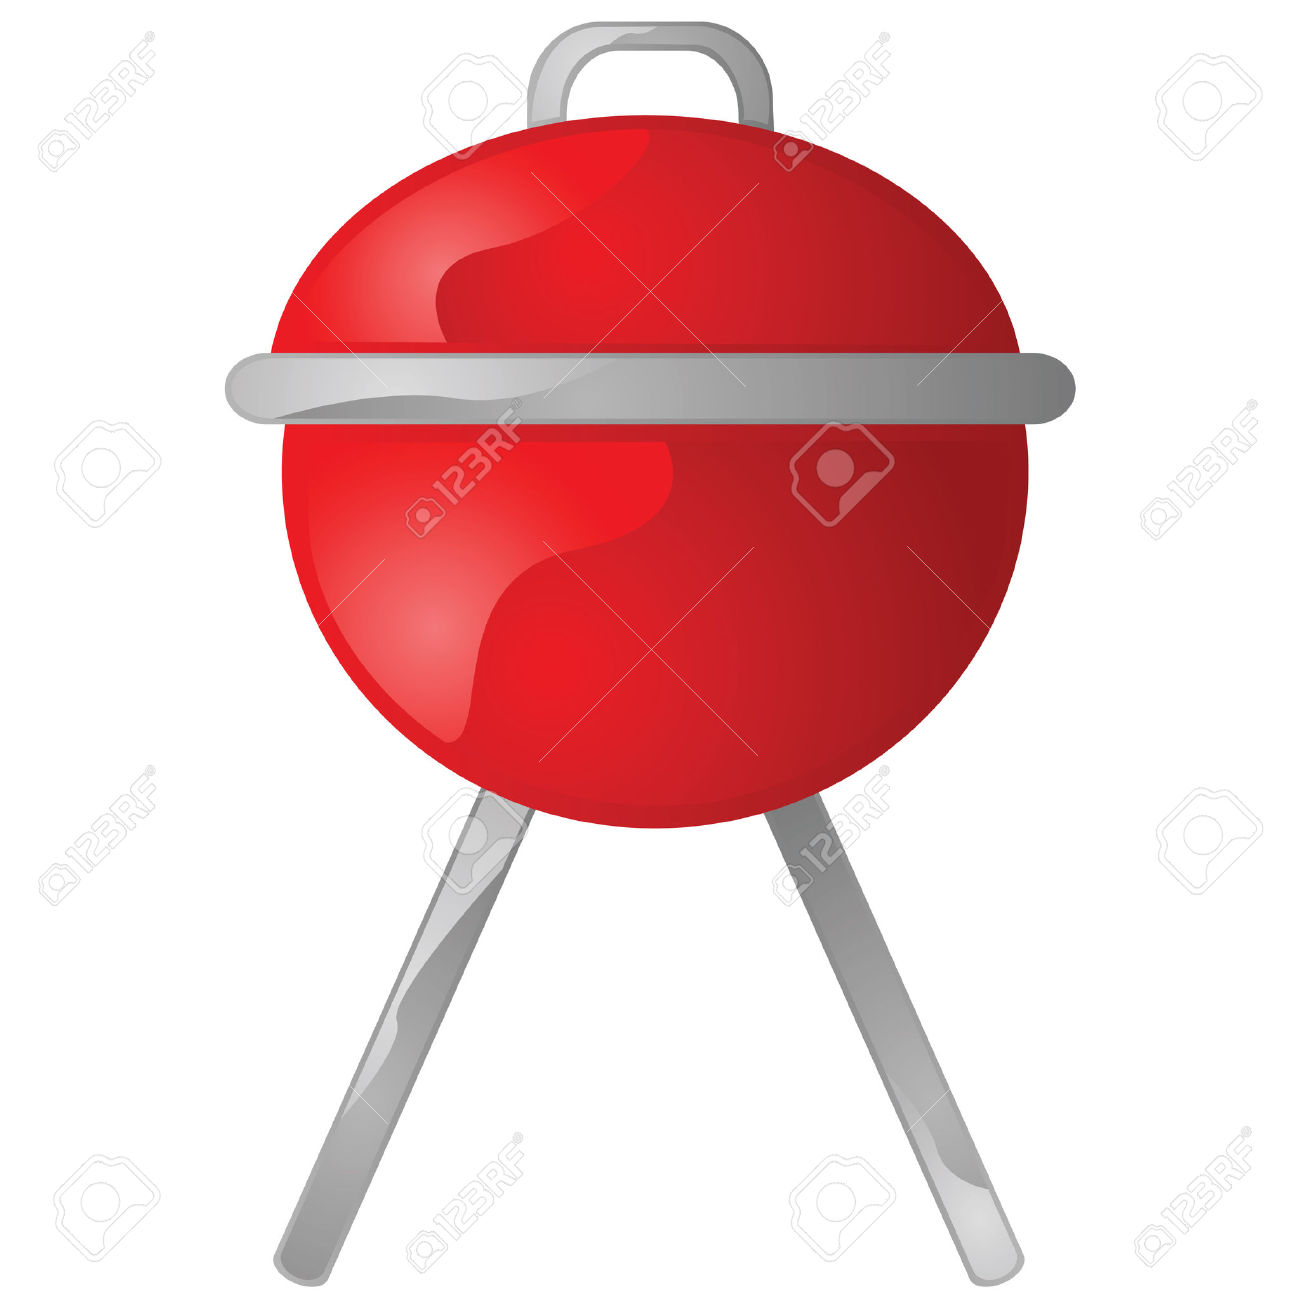 Red grill clipart.